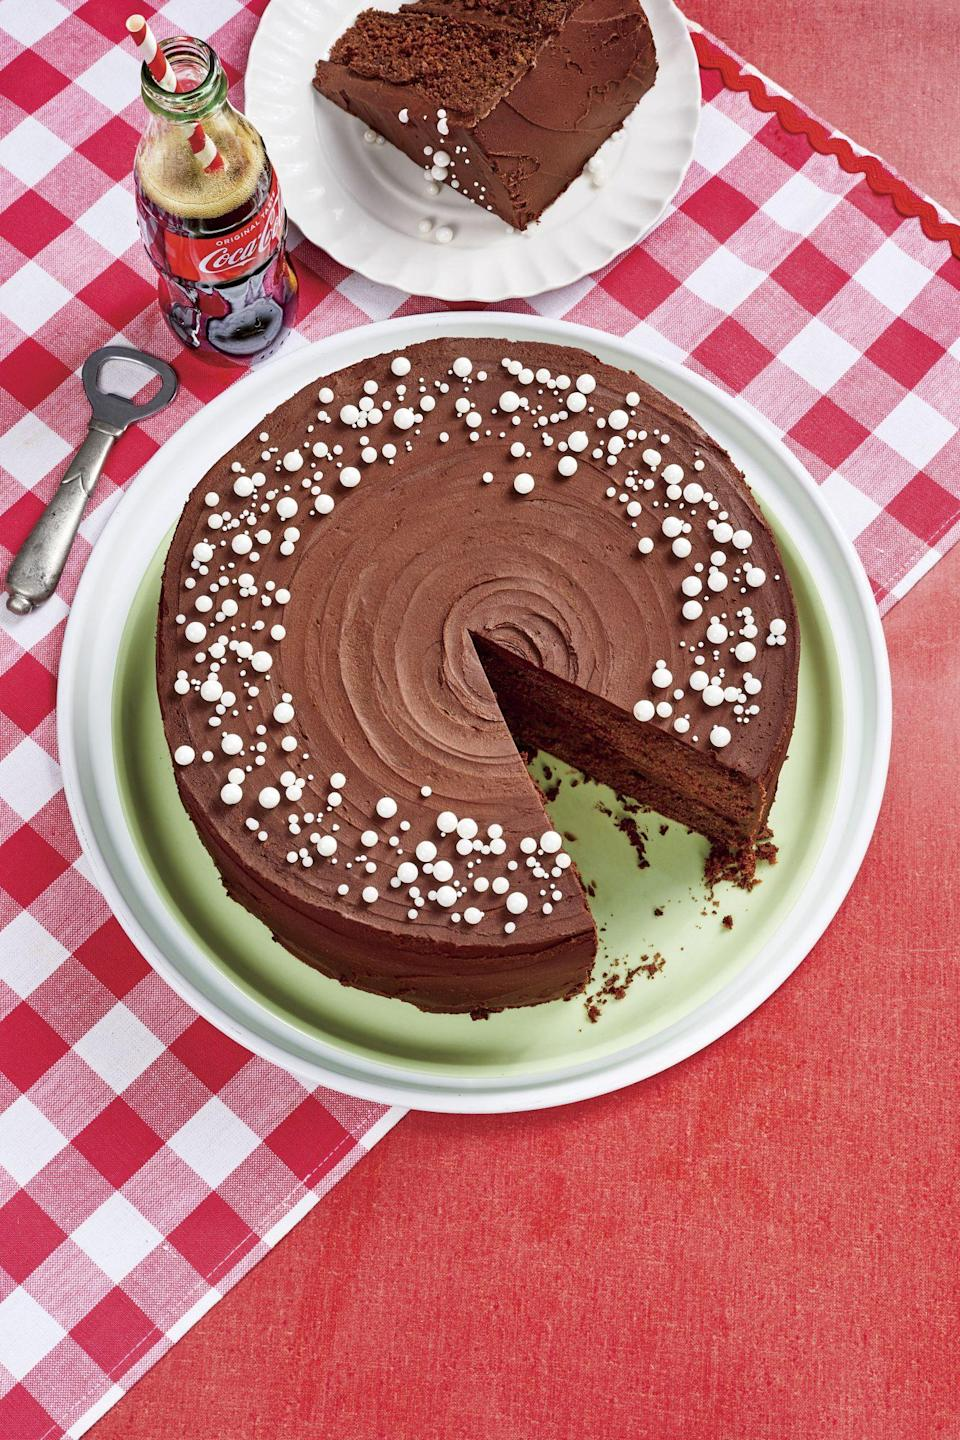 "<p><strong>Recipe: <a href=""https://www.southernliving.com/recipes/coca-cola-chocolate-cake"" rel=""nofollow noopener"" target=""_blank"" data-ylk=""slk:Coca Cola Chocolate Cake"" class=""link rapid-noclick-resp"">Coca Cola Chocolate Cake</a></strong></p> <p>They'll be amazed that their favorite soft drink can actually be used to make a decadent chocolate cake.</p>"